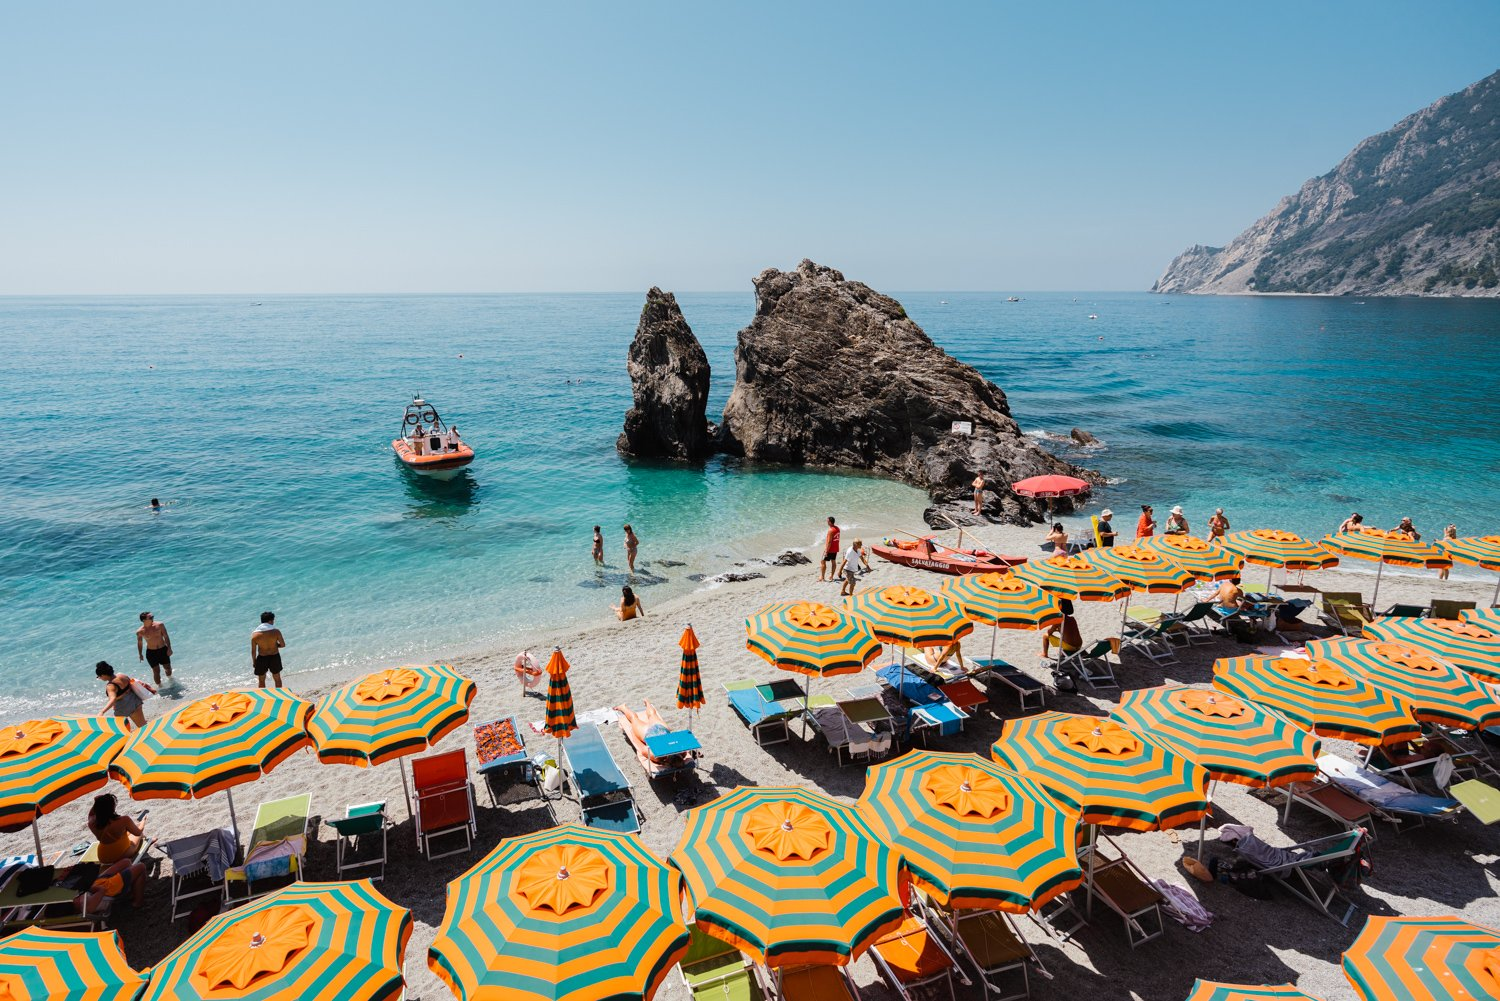 Orange striped umbrellas on beach in Italy with blue water and a boat arriving